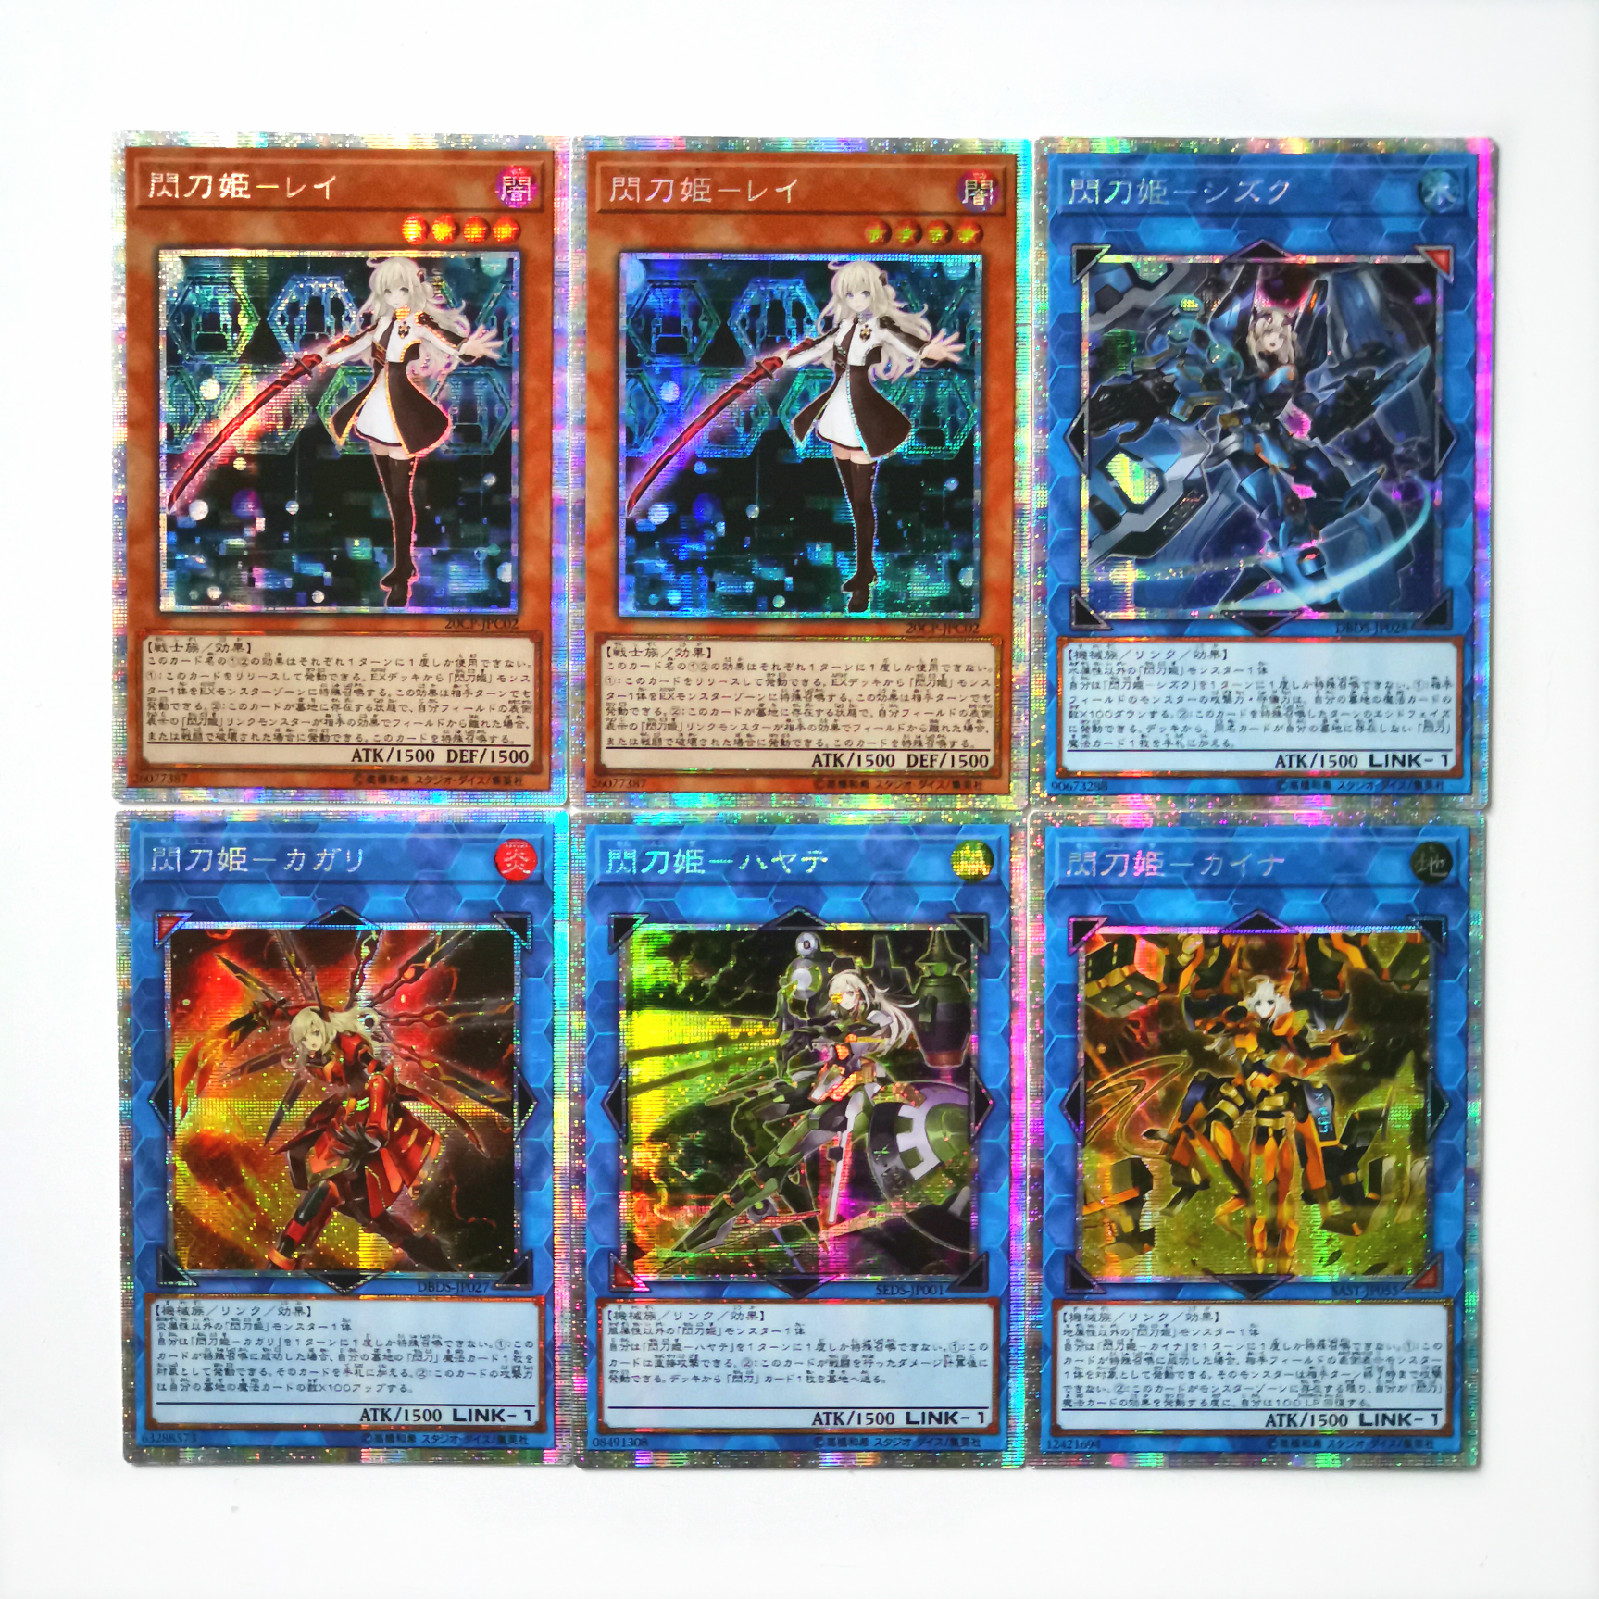 Yu Gi Oh DIY Sky Striker Ace Colorful Toys Hobbies Hobby Collectibles Game Collection Anime Cards